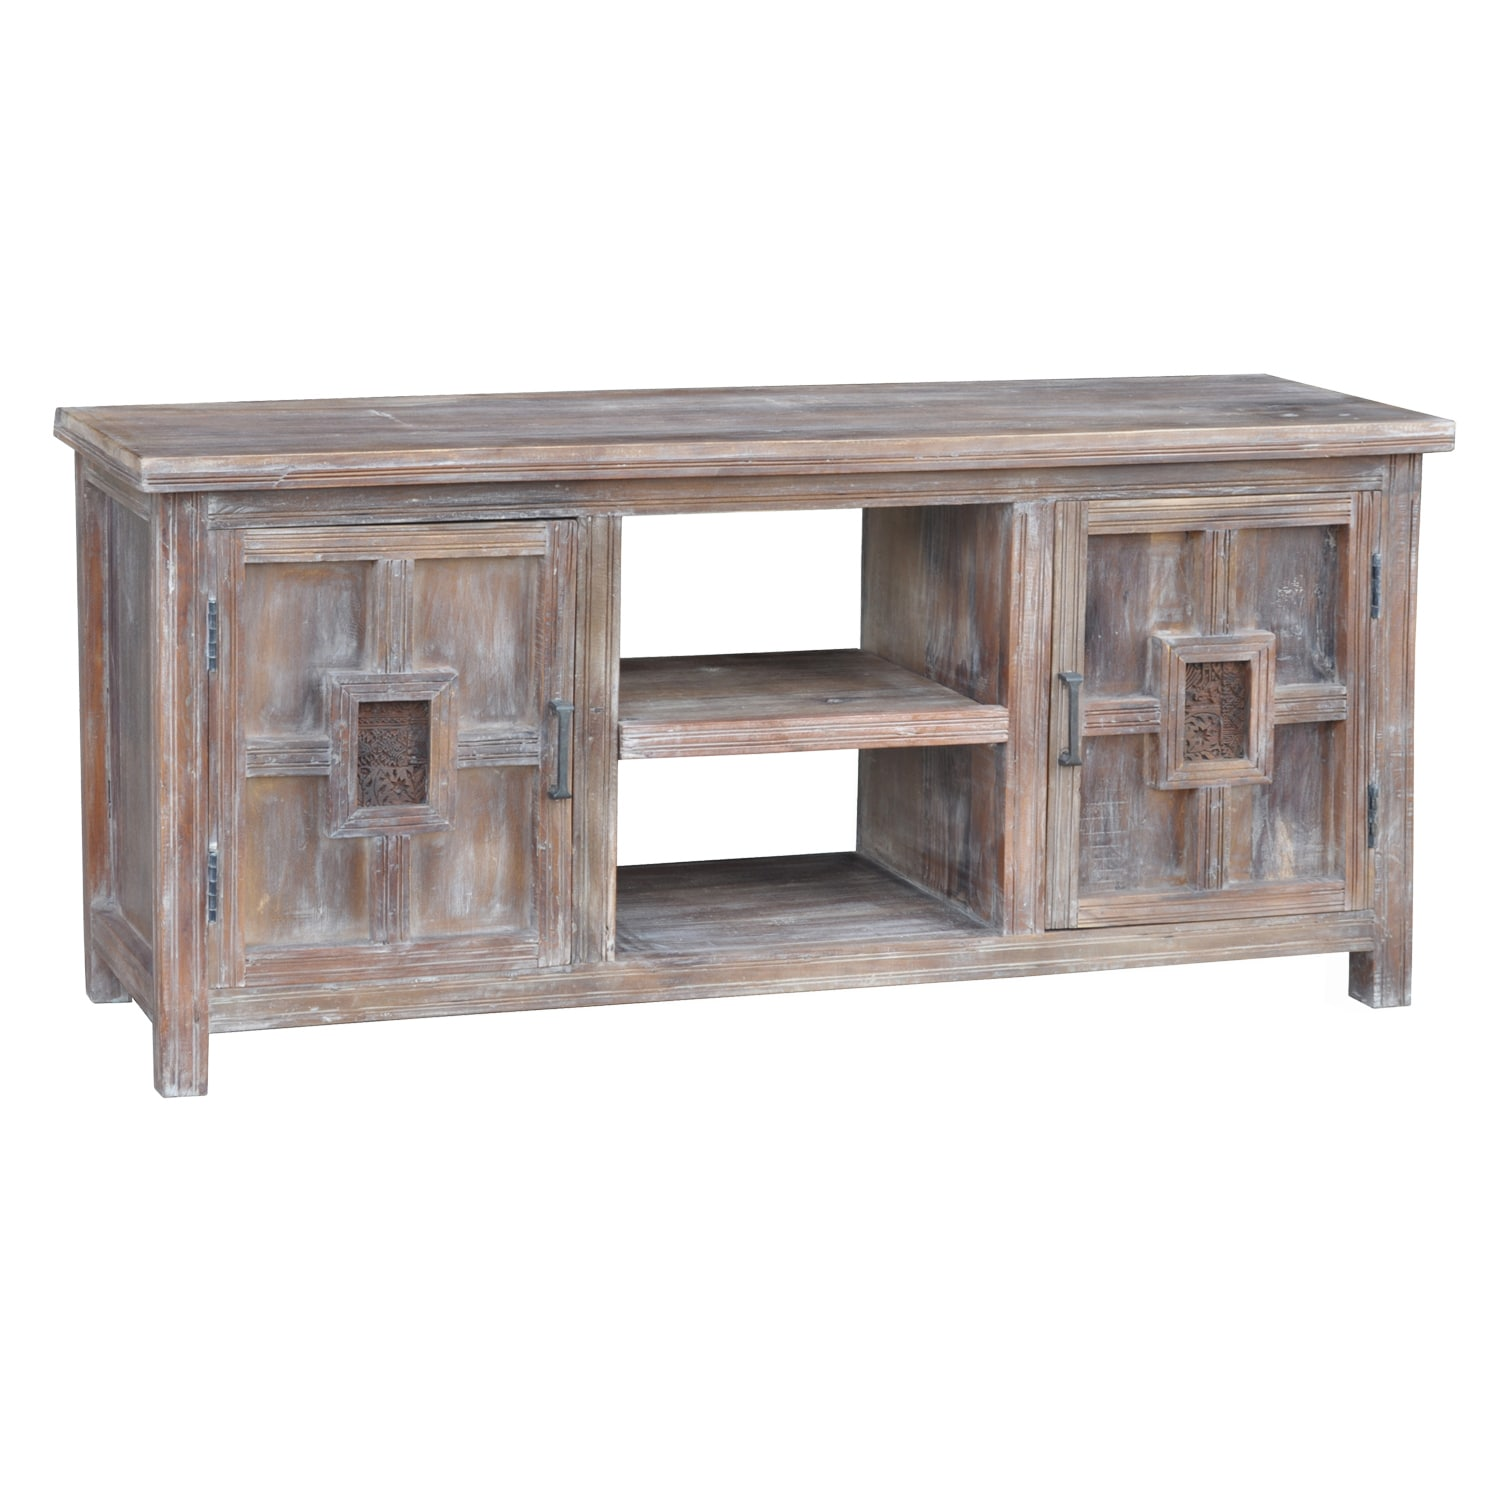 Kosas Collections Barton Lime Wash Acacia Wood TV Stand at Sears.com